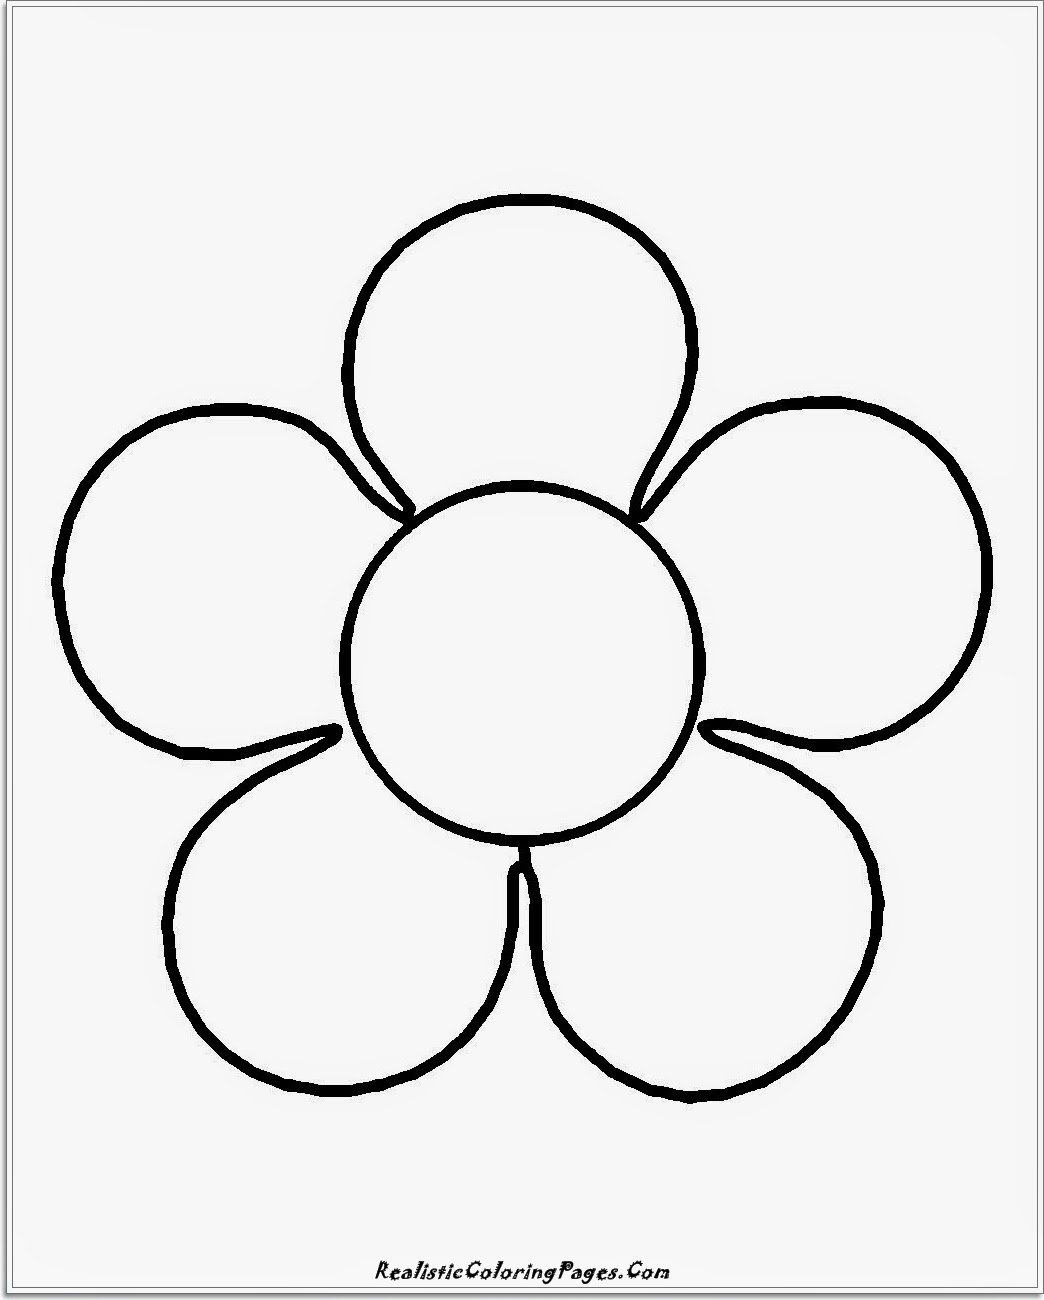 14 simple nature coloring pages realistic coloring pages for Easy flower coloring pages